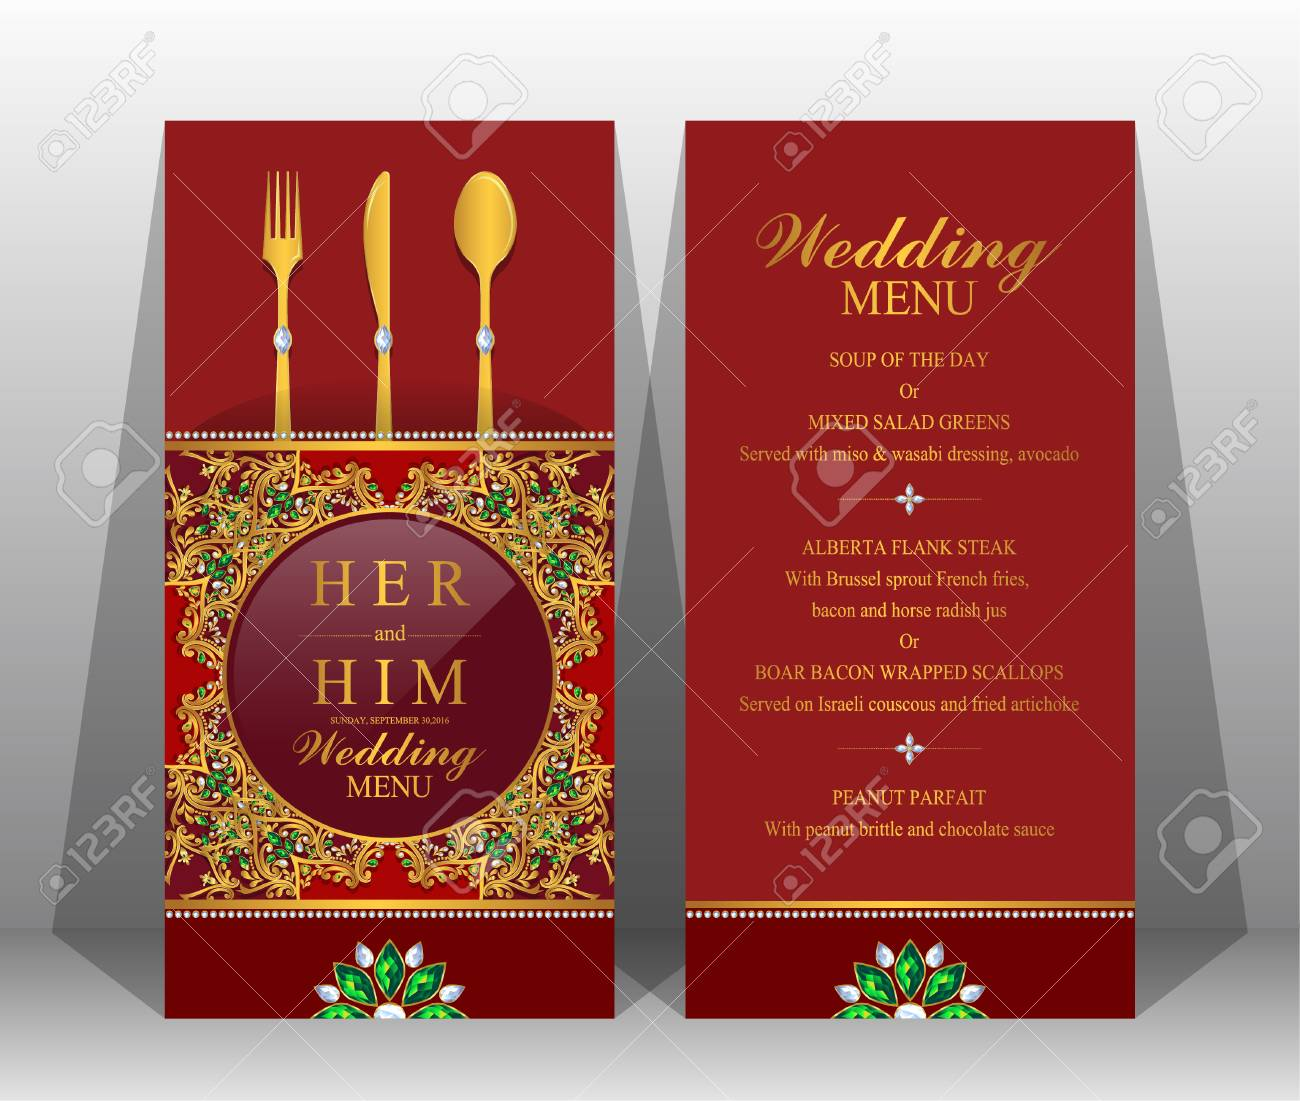 wedding menu card templates with gold patterned and crystals